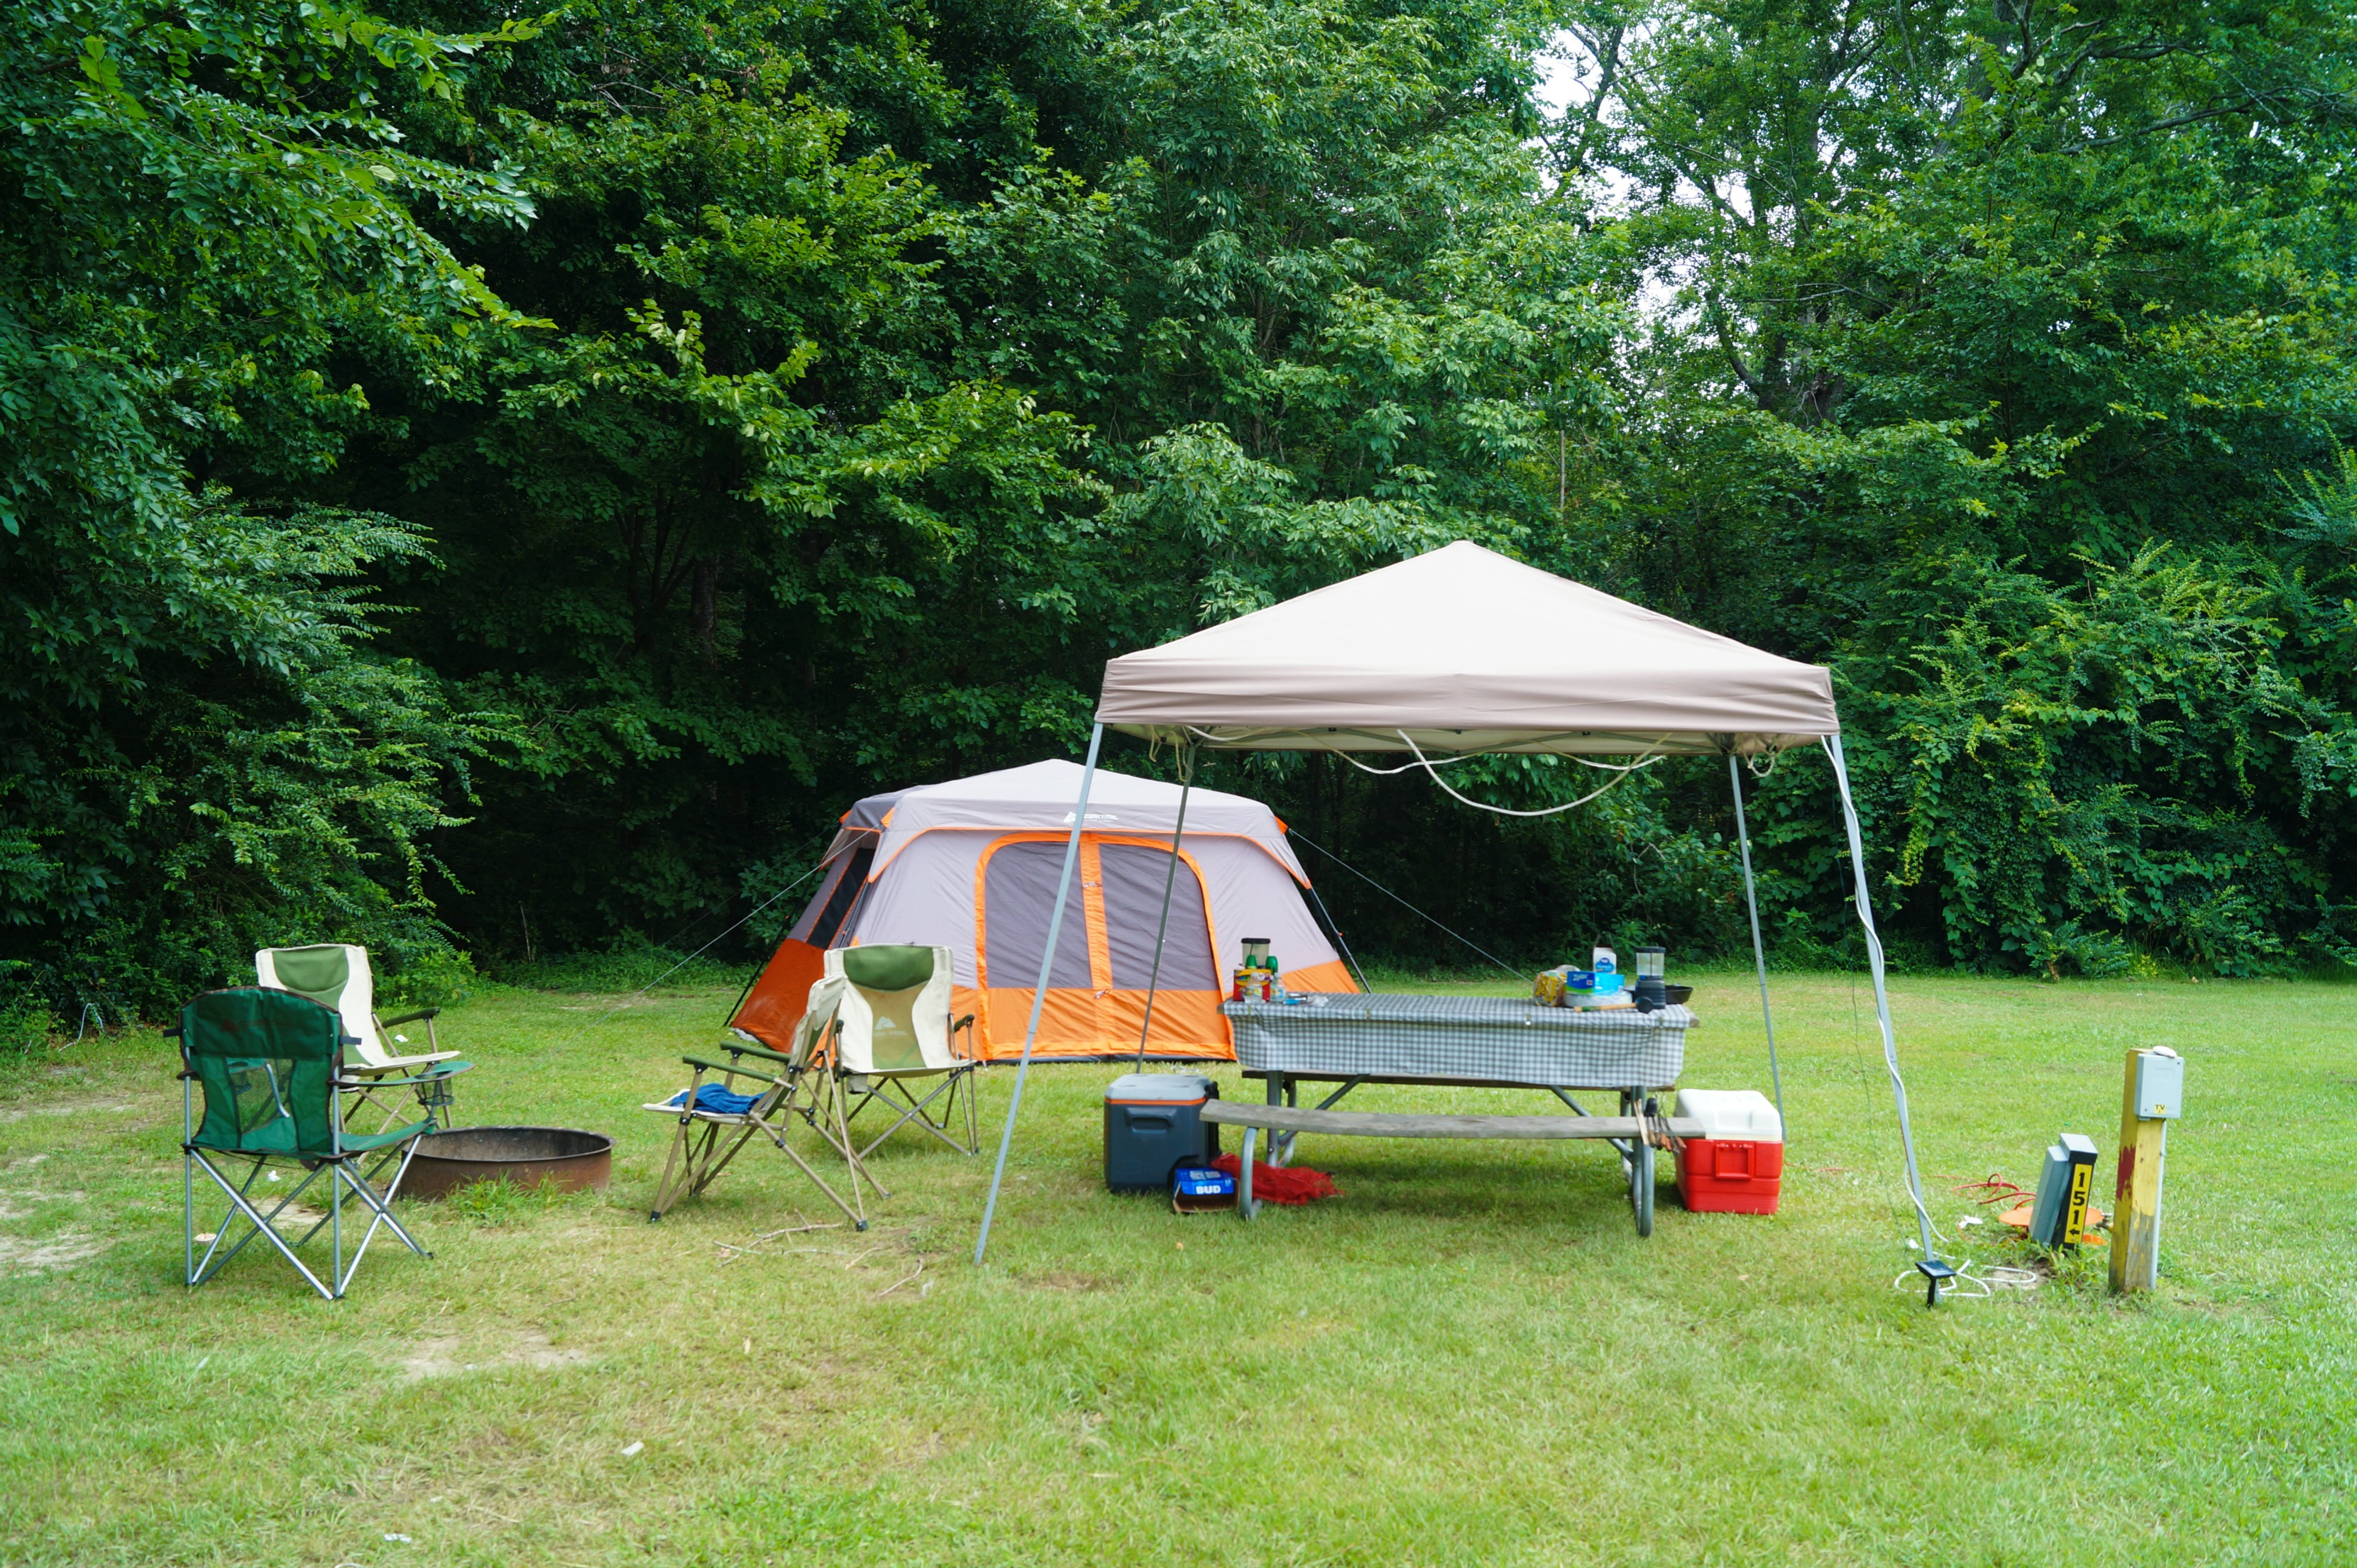 virginia beach virginia tent camping sites virginia beach koa